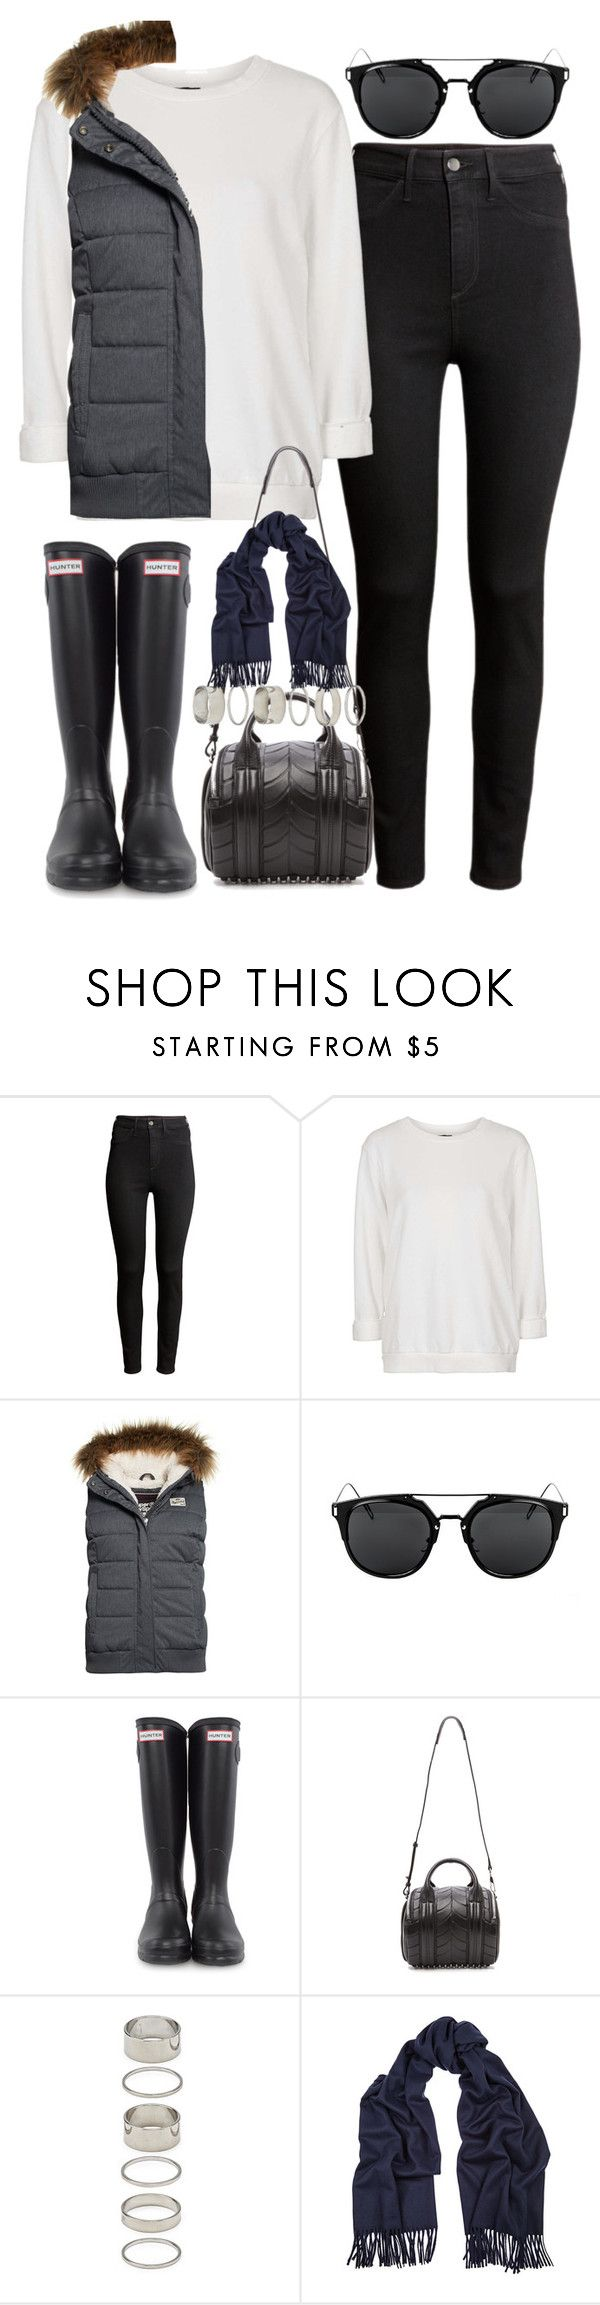 """Outfit for a rainy day"" by ferned ❤ liked on Polyvore featuring H&M, Topshop, Superdry, Hunter, Alexander Wang, Forever 21 and Acne Studios"